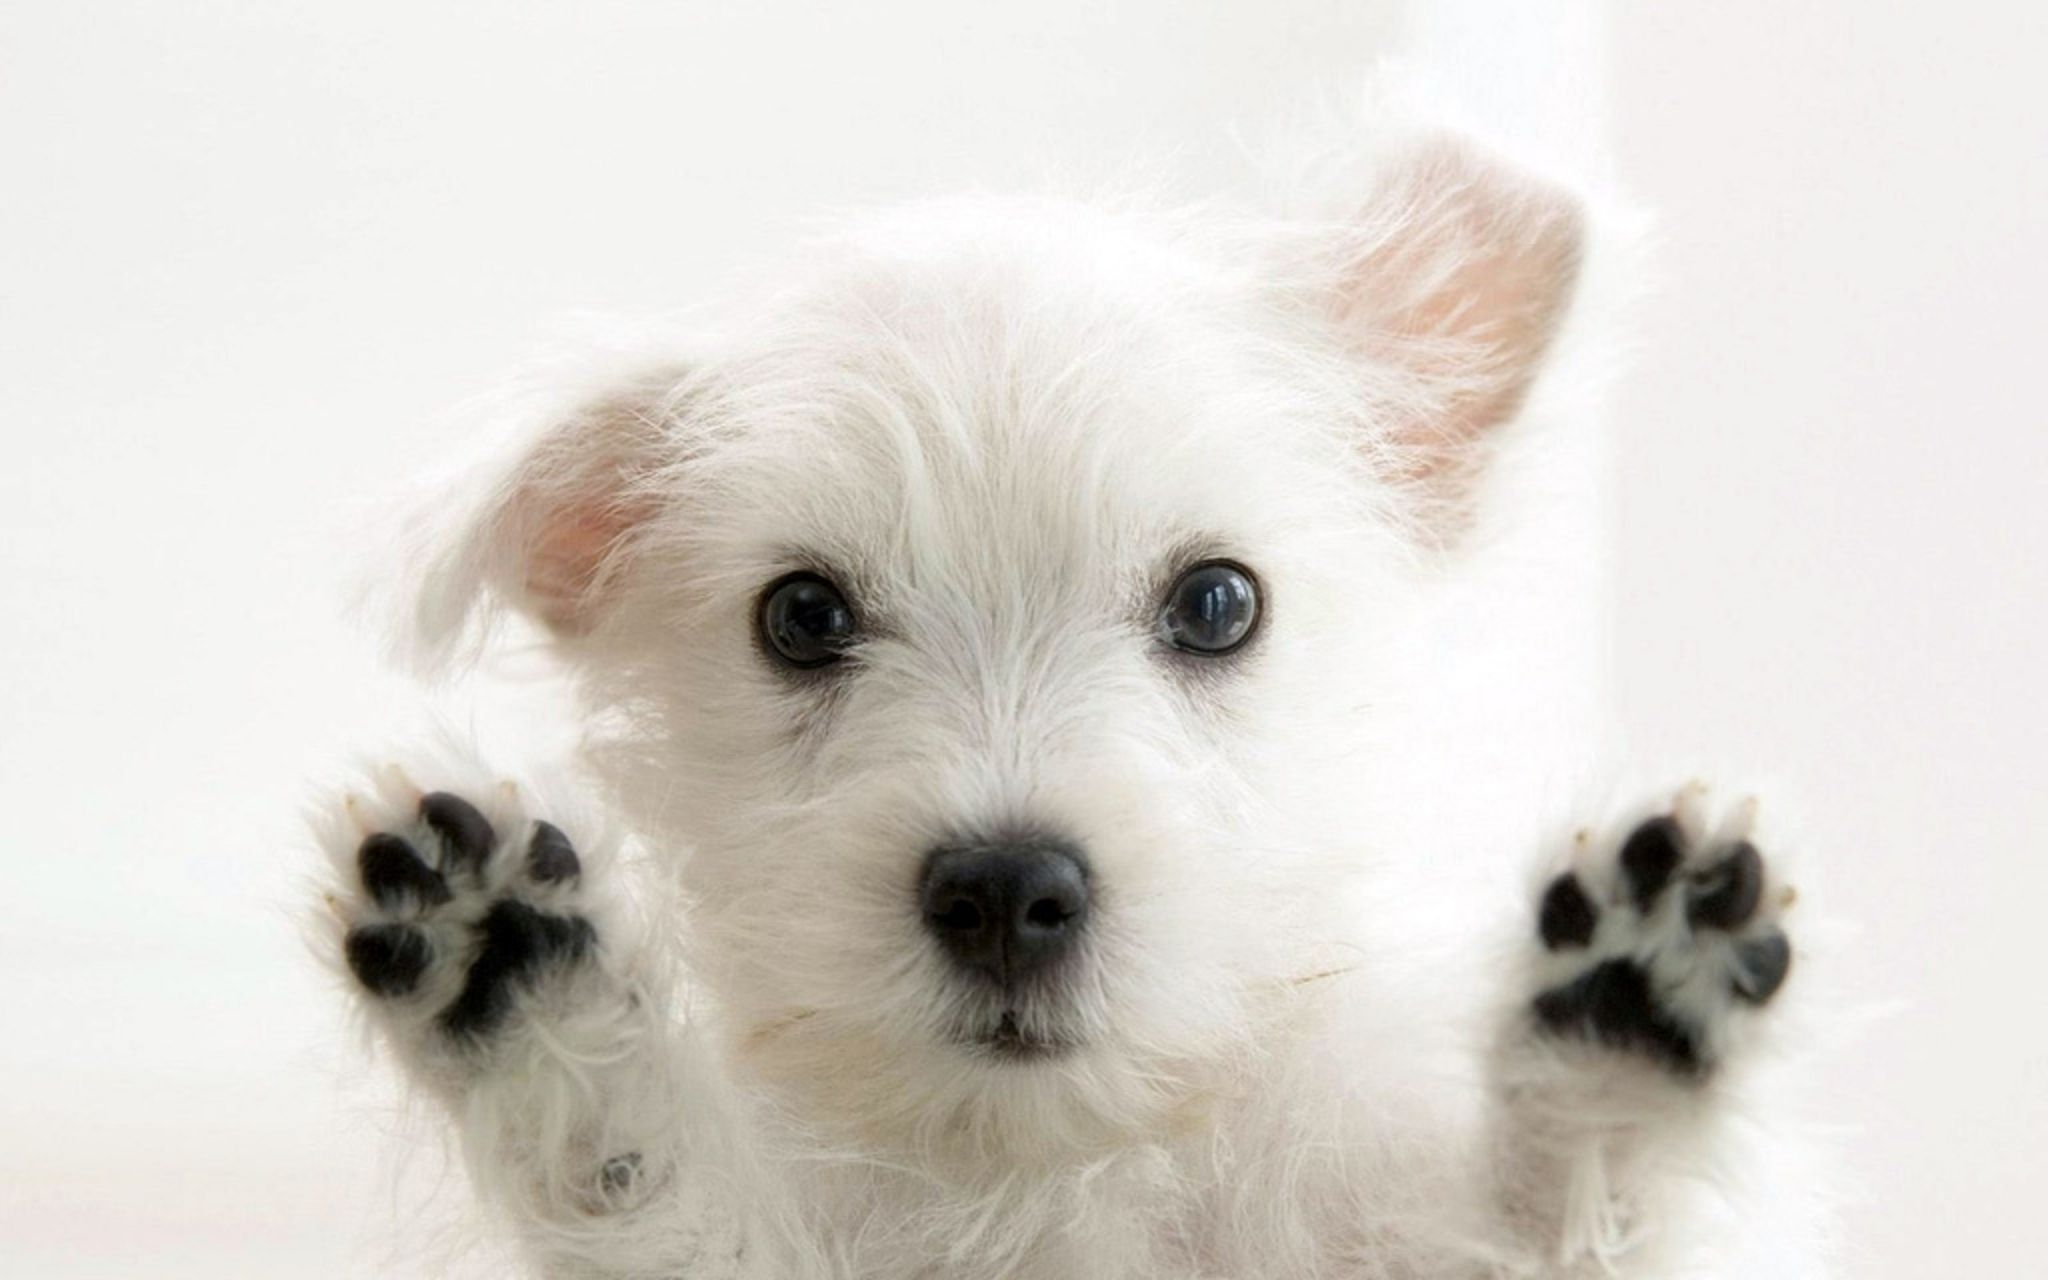 Puppy Wallpaper Hd Backgrounds Images Cute White Dogs Very Cute